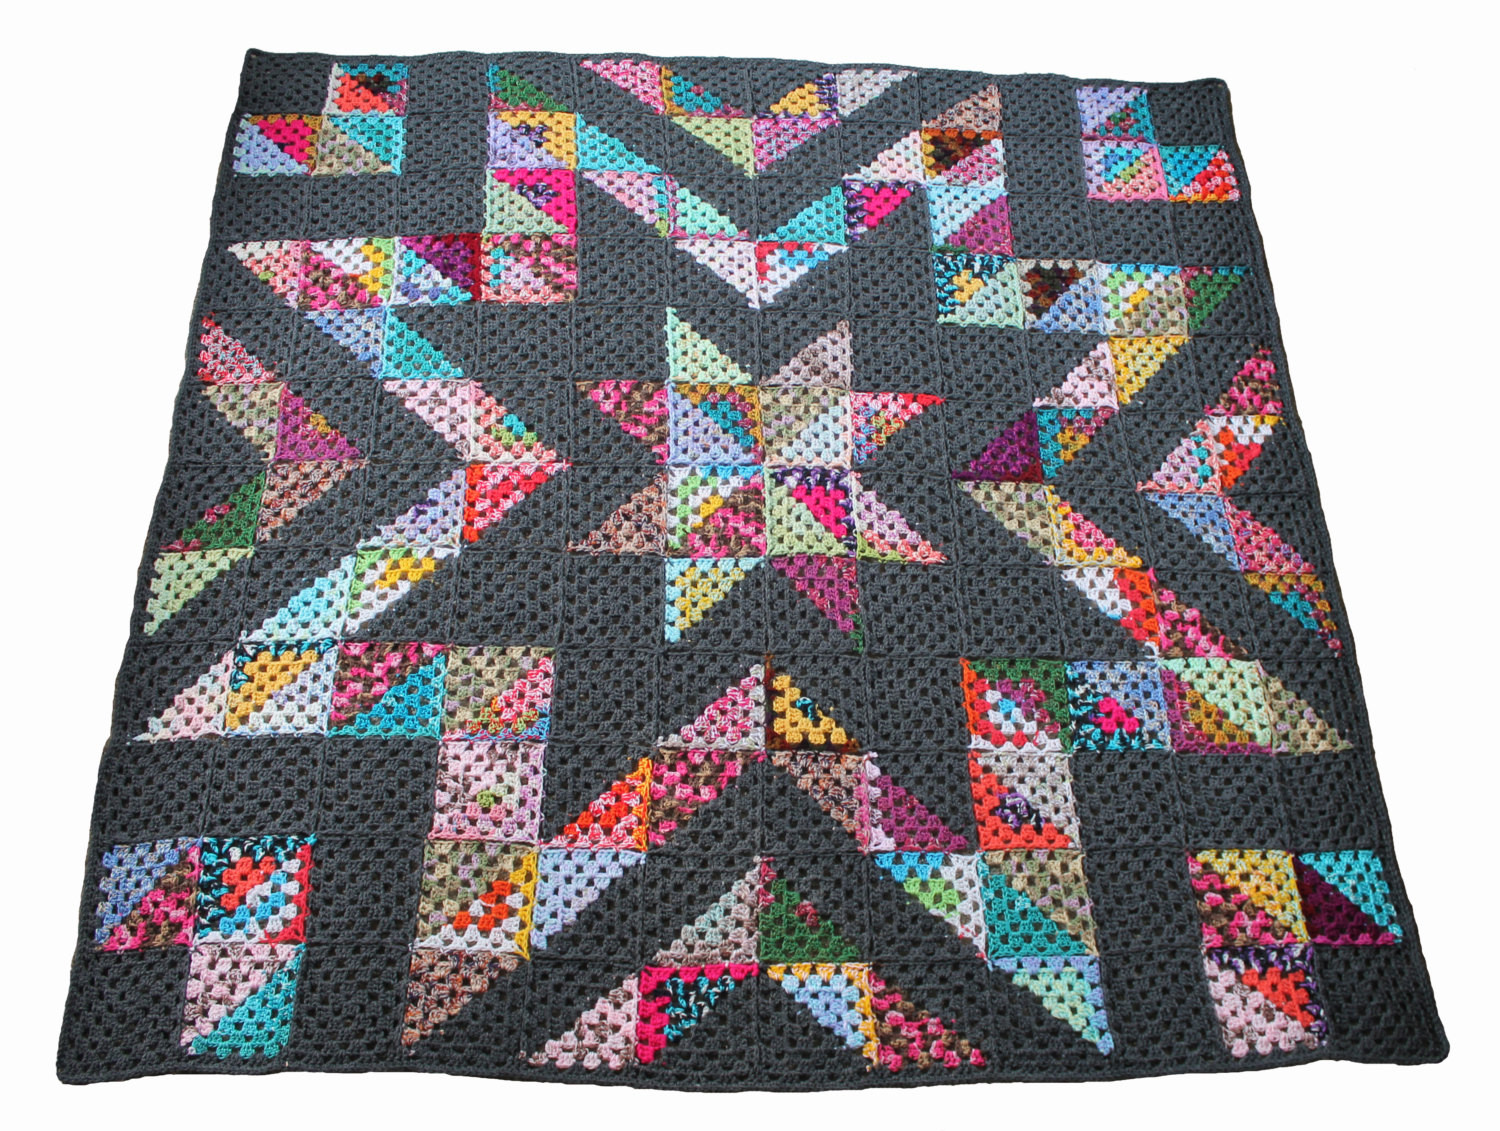 Star Blanket Crochet Pattern Inspirational Easy Crochet Afghan Pattern Granny Star Stashbuster Crochet Of Adorable 46 Pictures Star Blanket Crochet Pattern